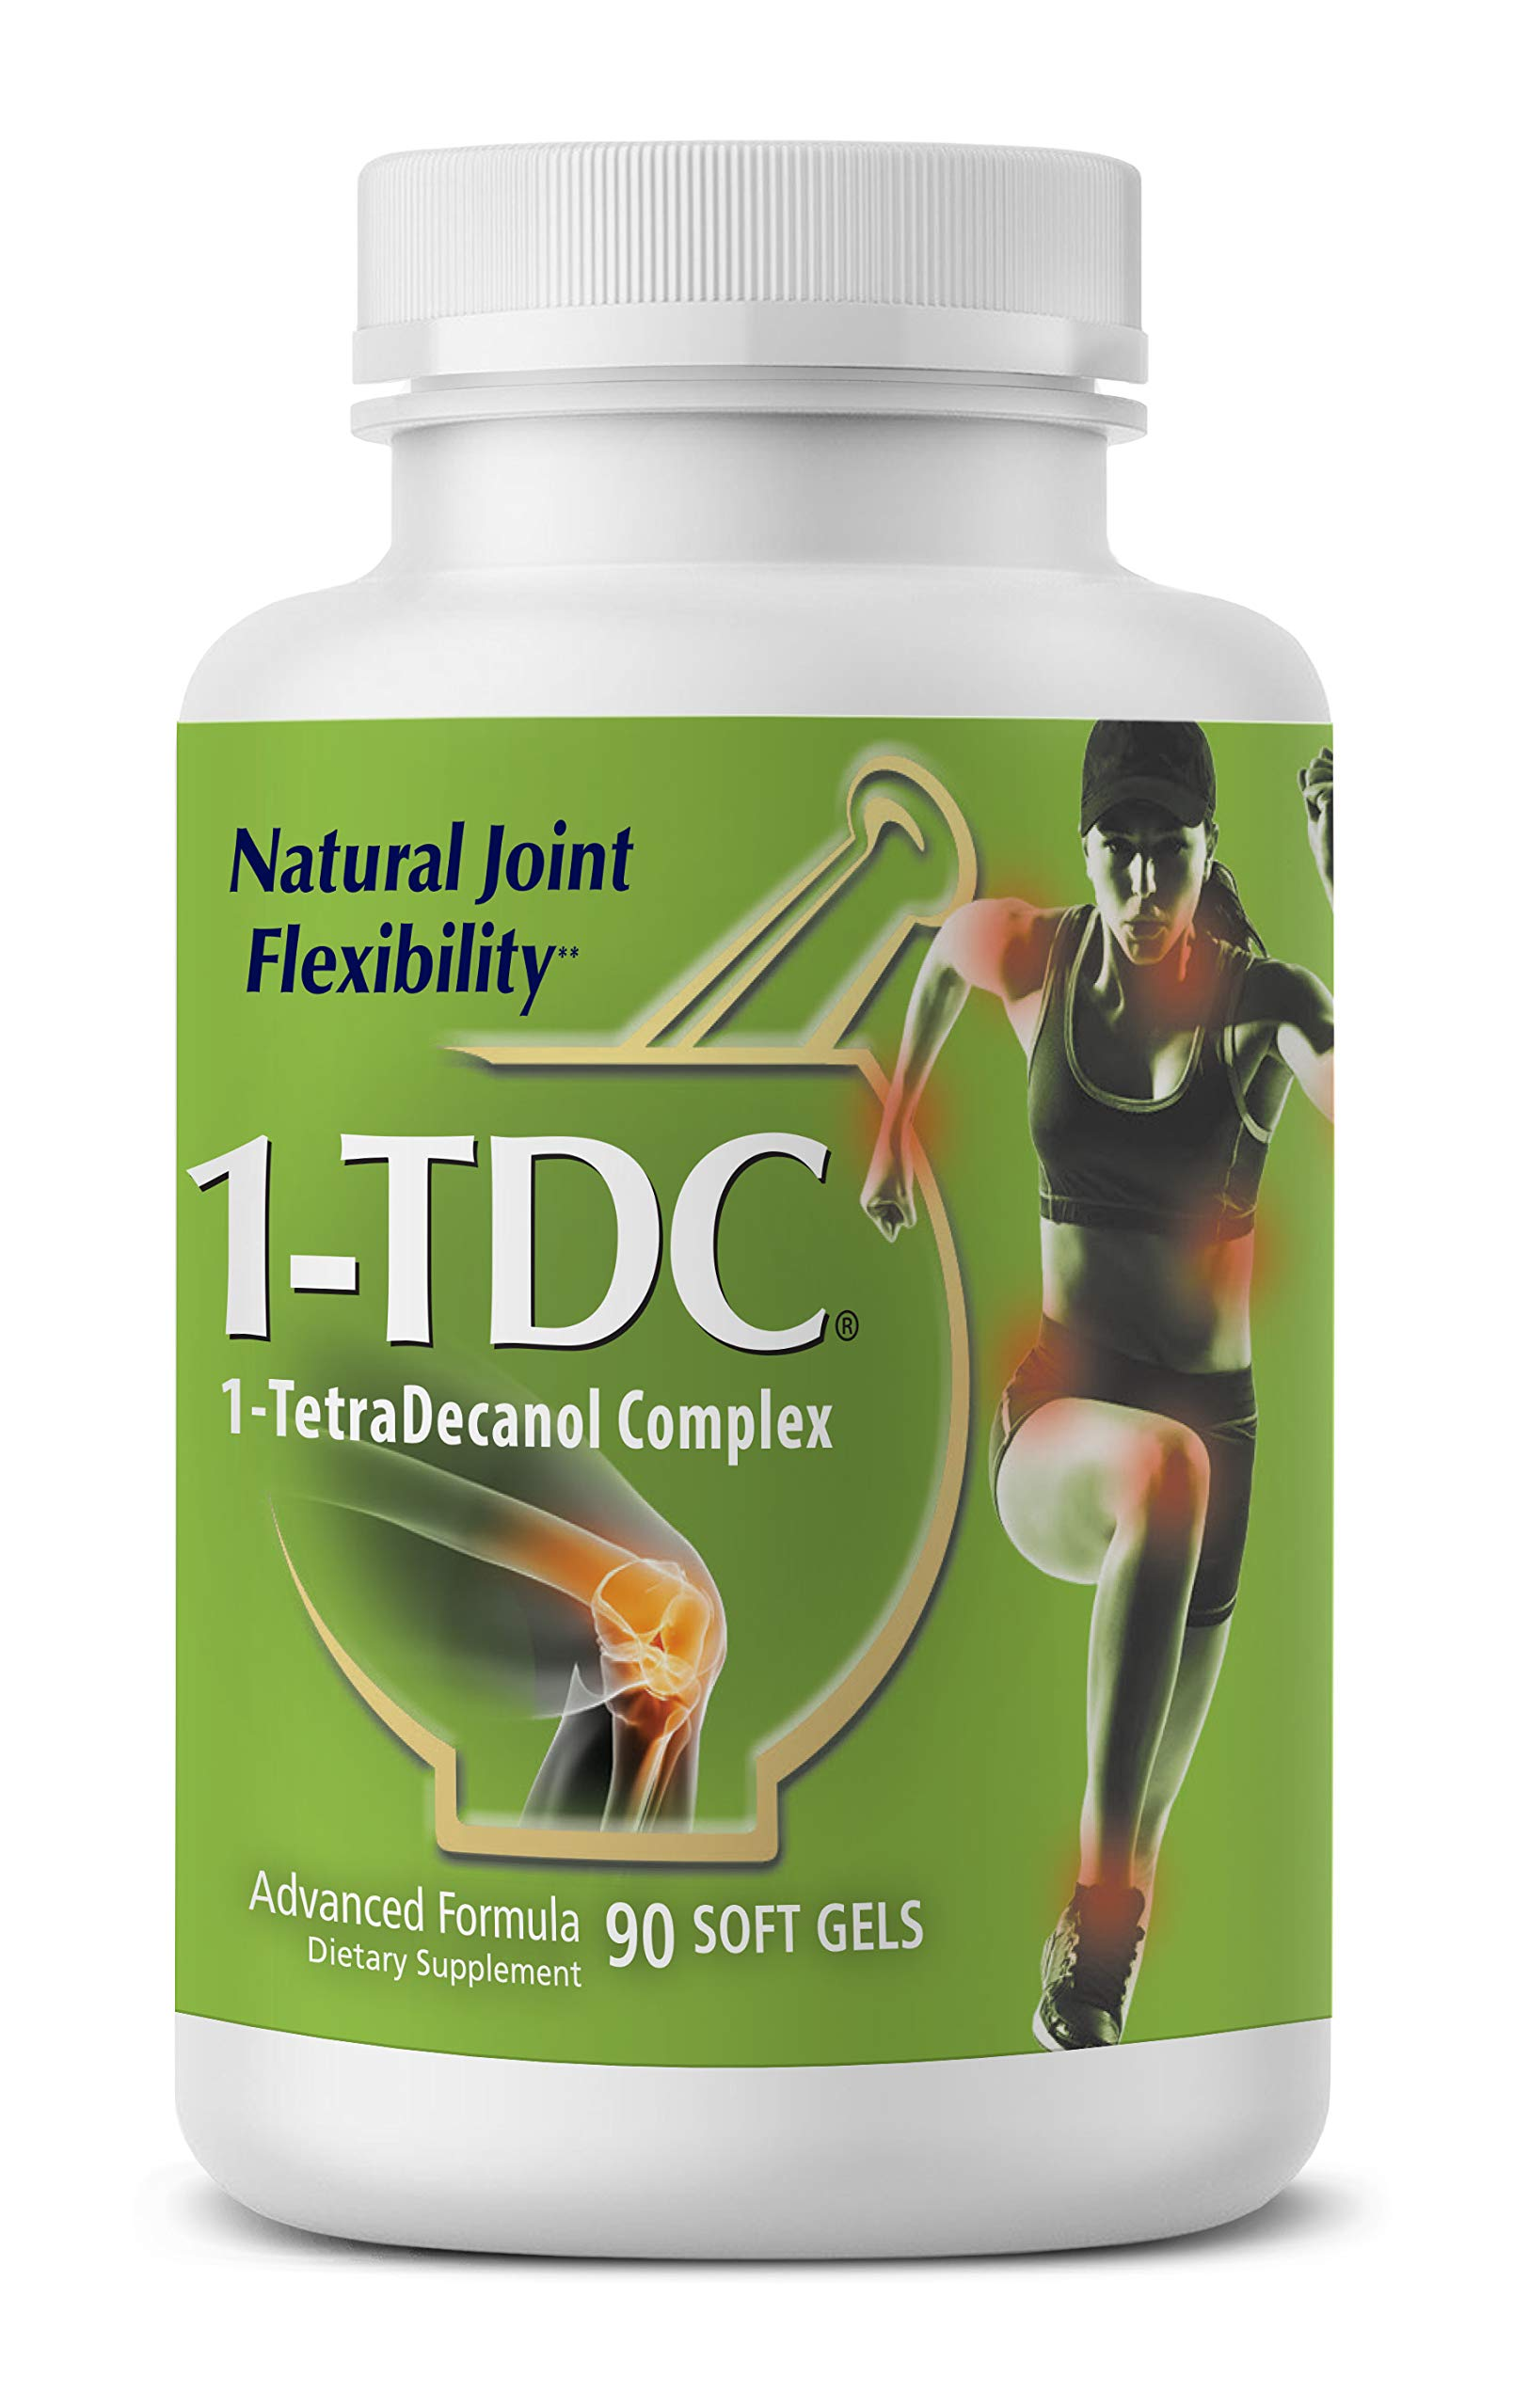 1TDC - Joint & Muscle Health - 90 Soft Gels - Formulated to Provide Complete Body Relief - Enhanced with 1-TetraDecanol Complex to Promote Natural Joint Flexibility - Safe & Effective by 1-TDC